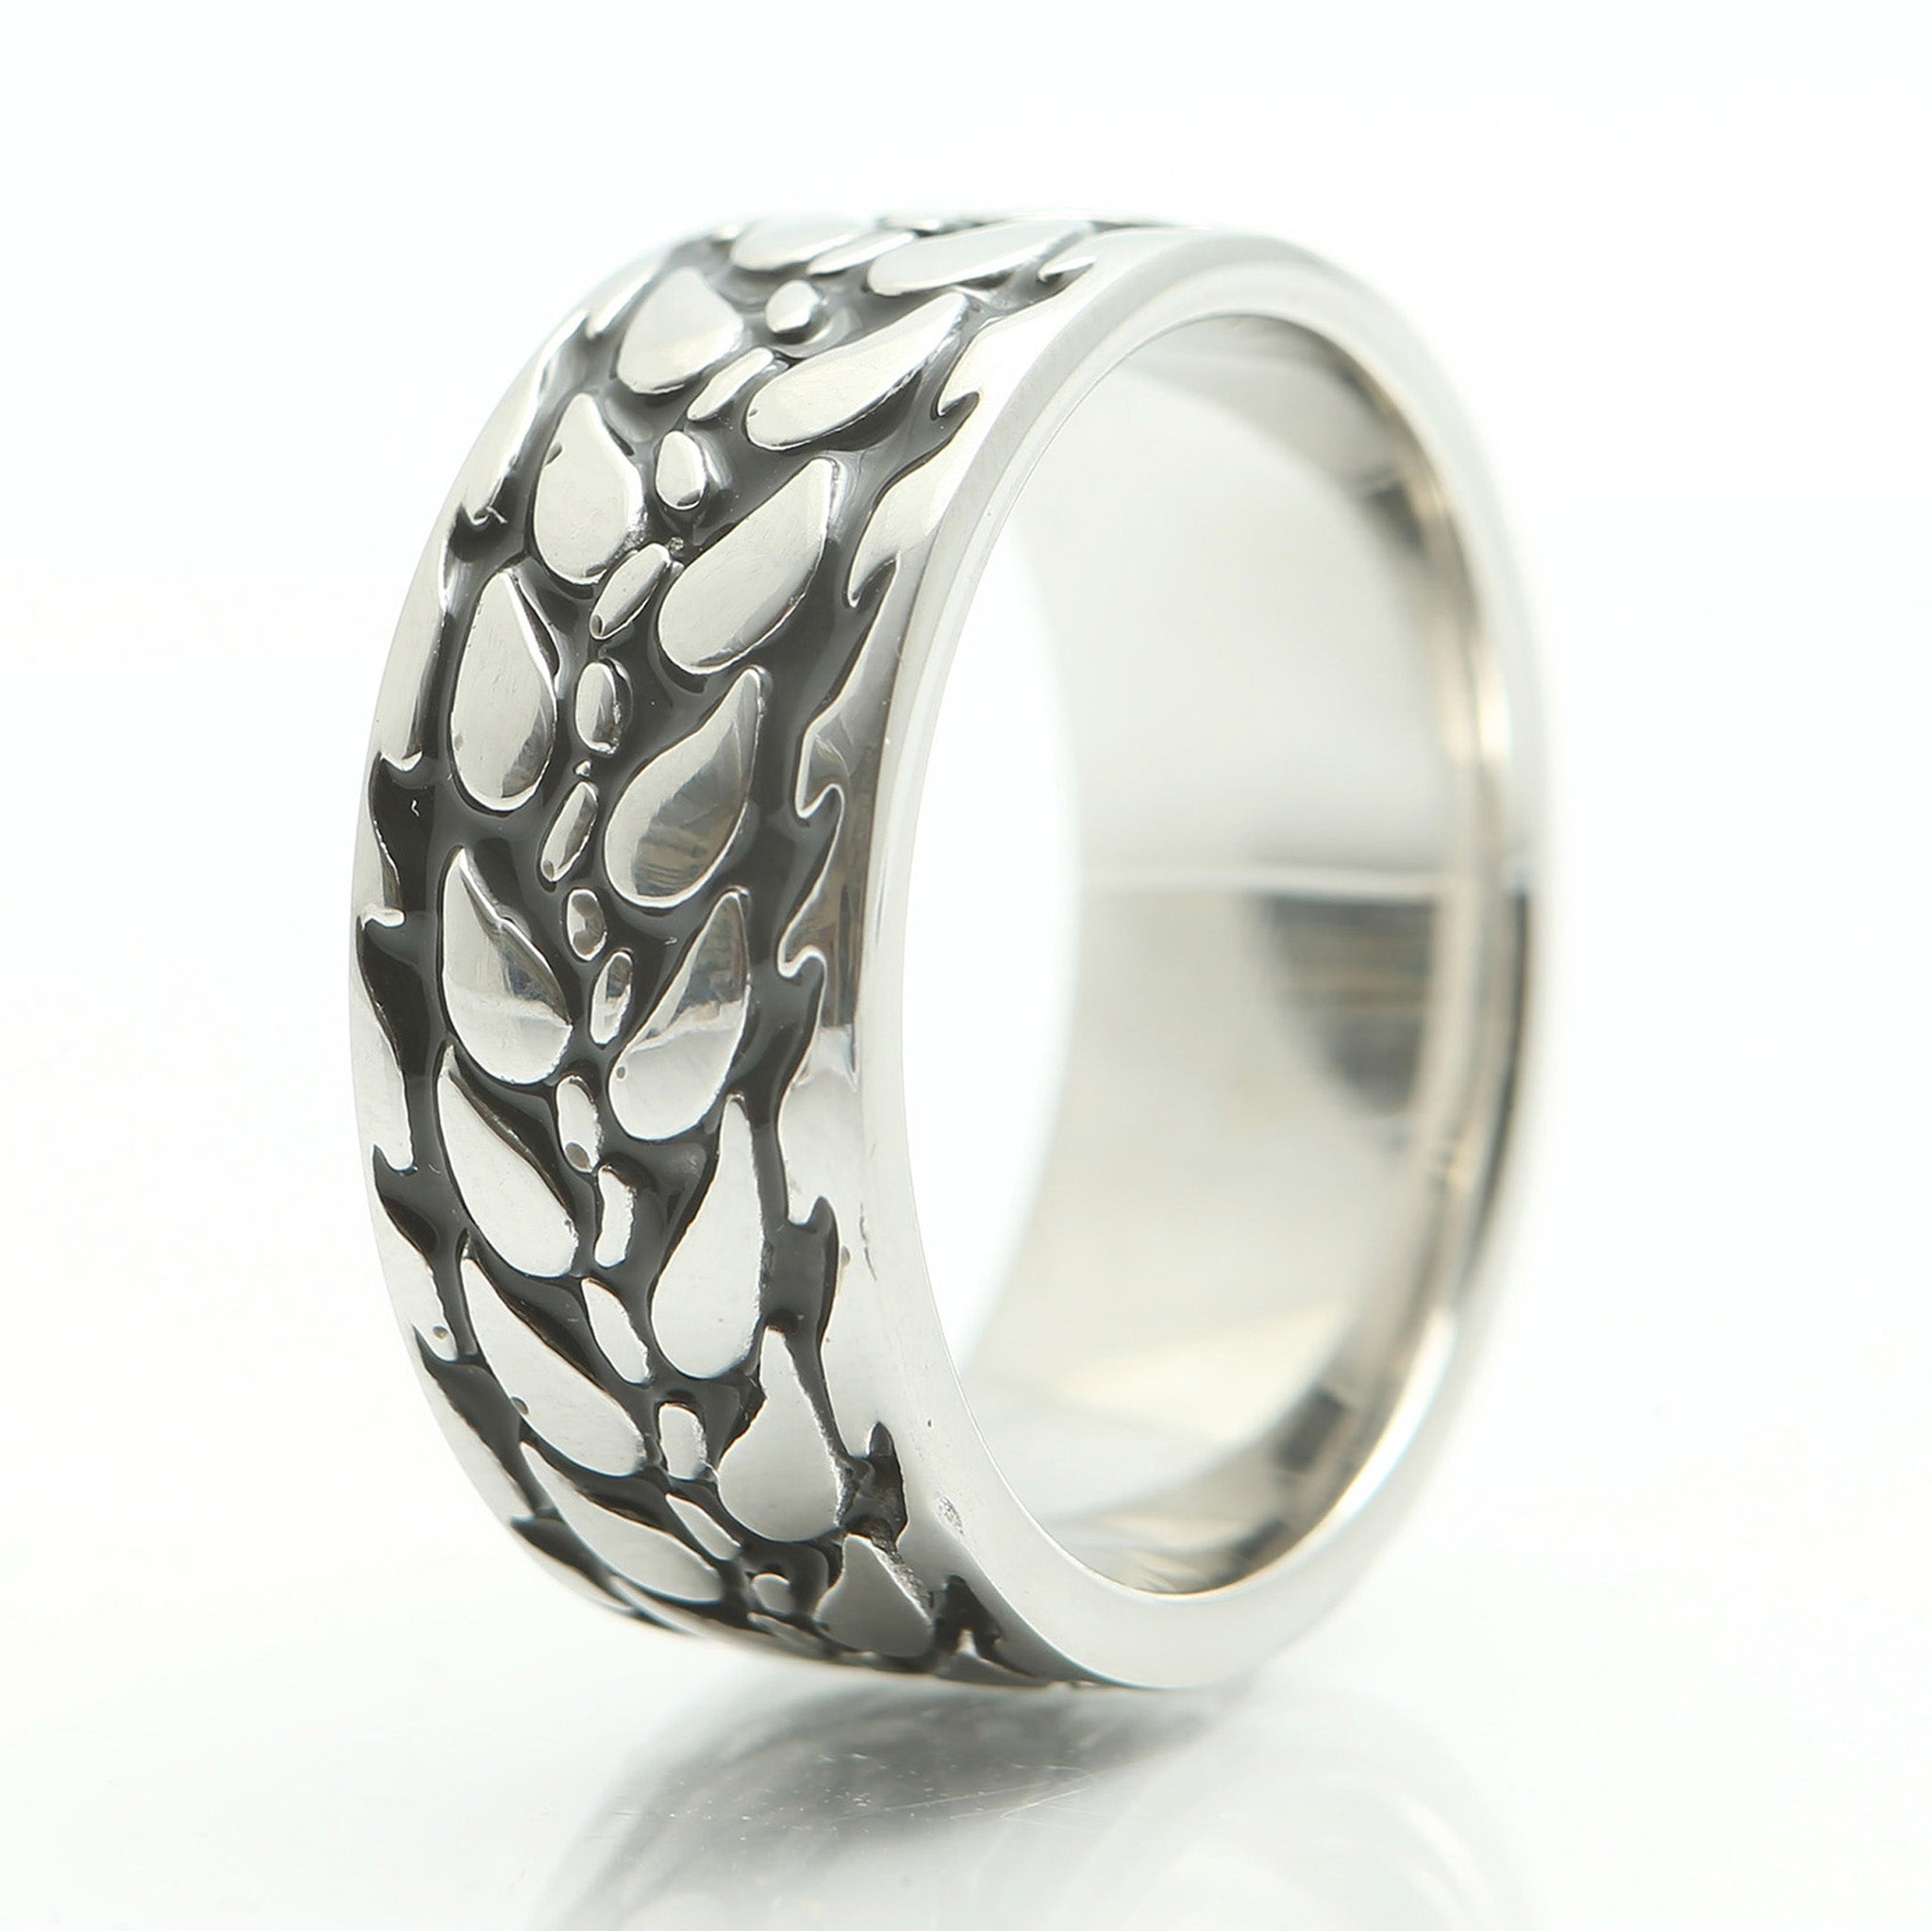 Barley Ring in Wide Stainless Steel